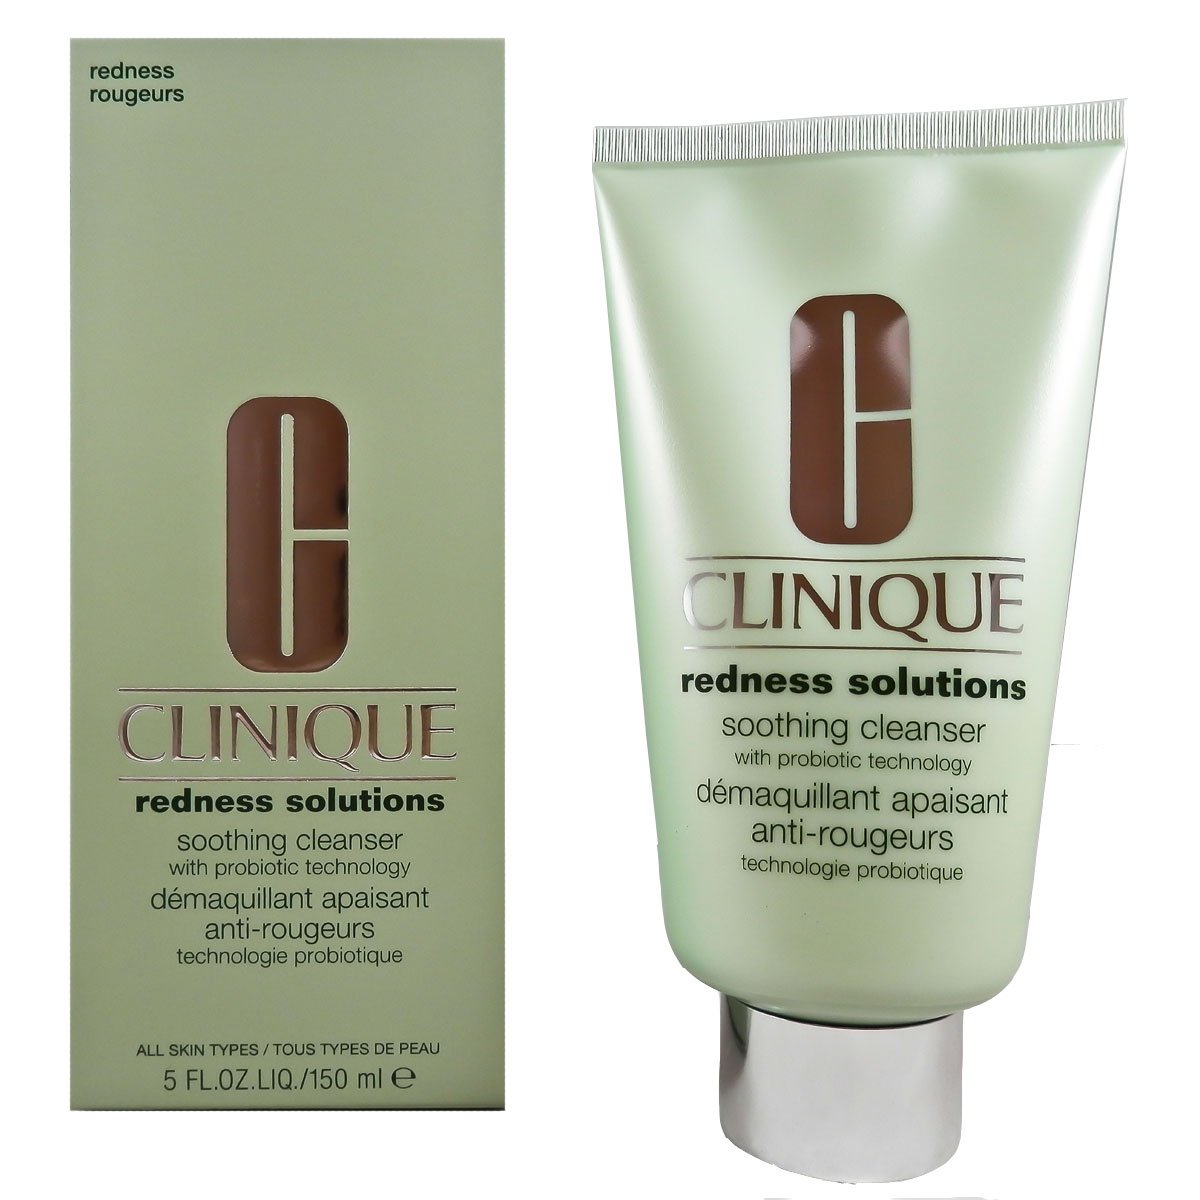 Clinique - SOLUTIONS soothing redness cleanser 150 ml 0020714297909 6L4N010000_-150ml